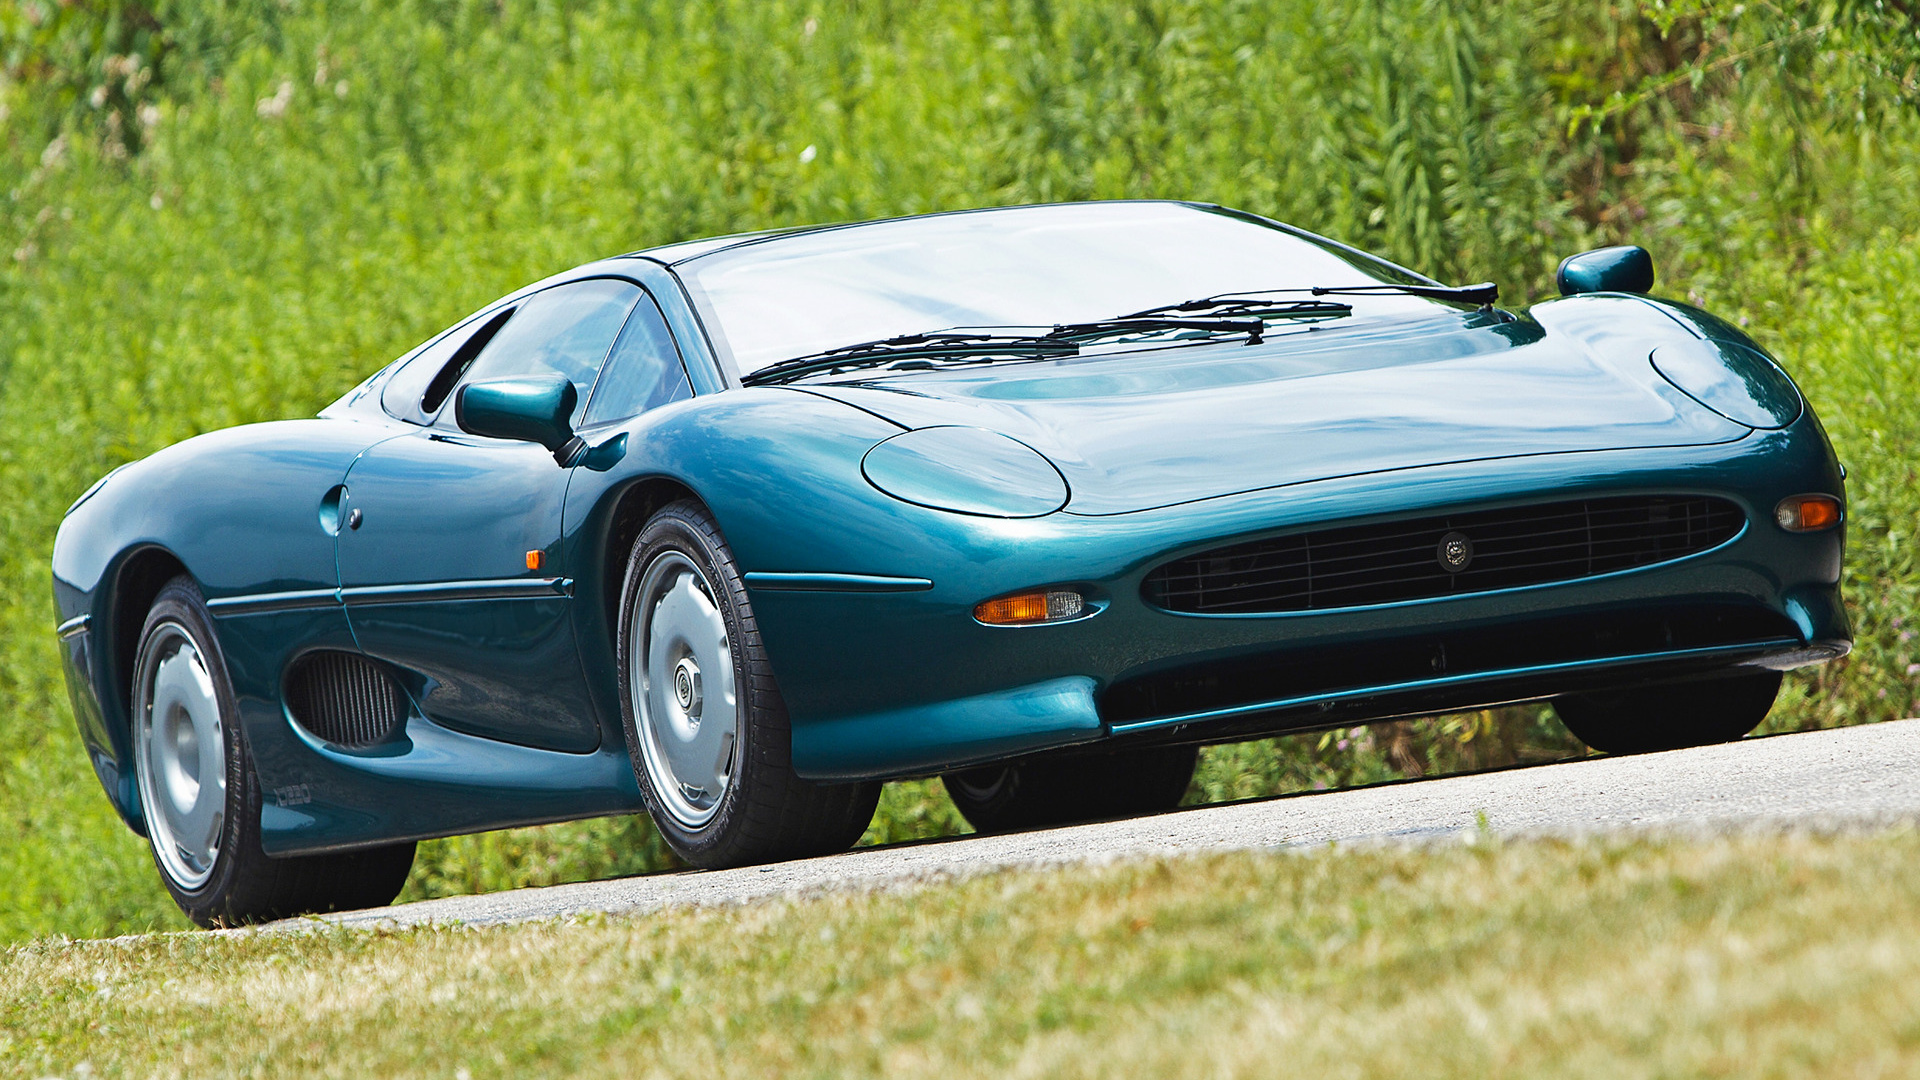 Jaguar XJ220 1992 Wallpapers And HD Images Car Pixel